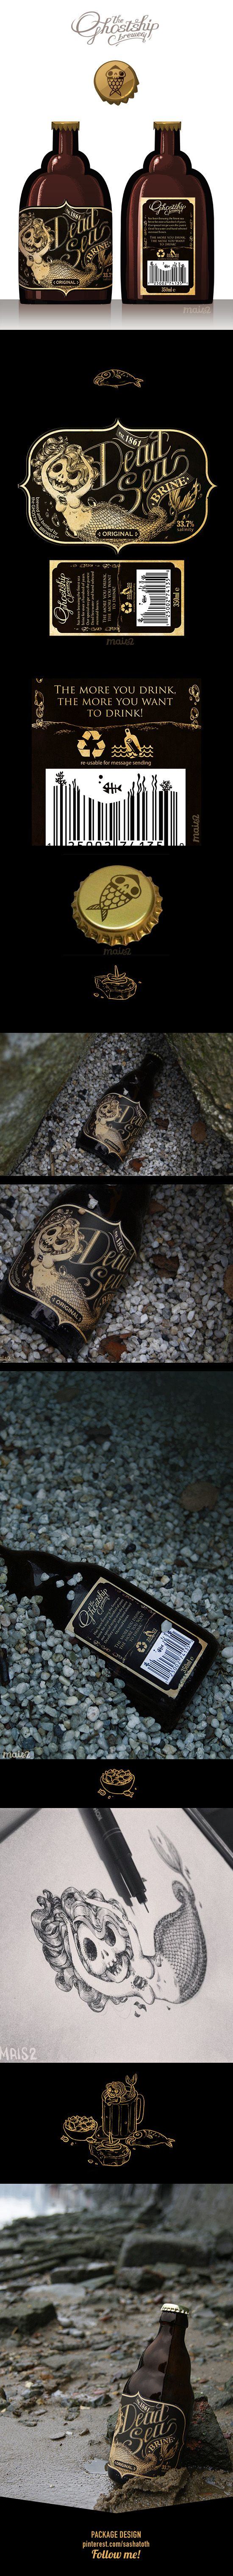 "⚓ The DEAD SEA brine ⚓ ""Personal project for an hypotetic Sea Brine drink for pirates, the 1st of a serie of products maybe, at least I manage to finish this and I'm quite satisfied because it looks how I wanted :)"" by Alessandra MAiS2 Criseo, via Behance I just love this #beer #packaging PD"